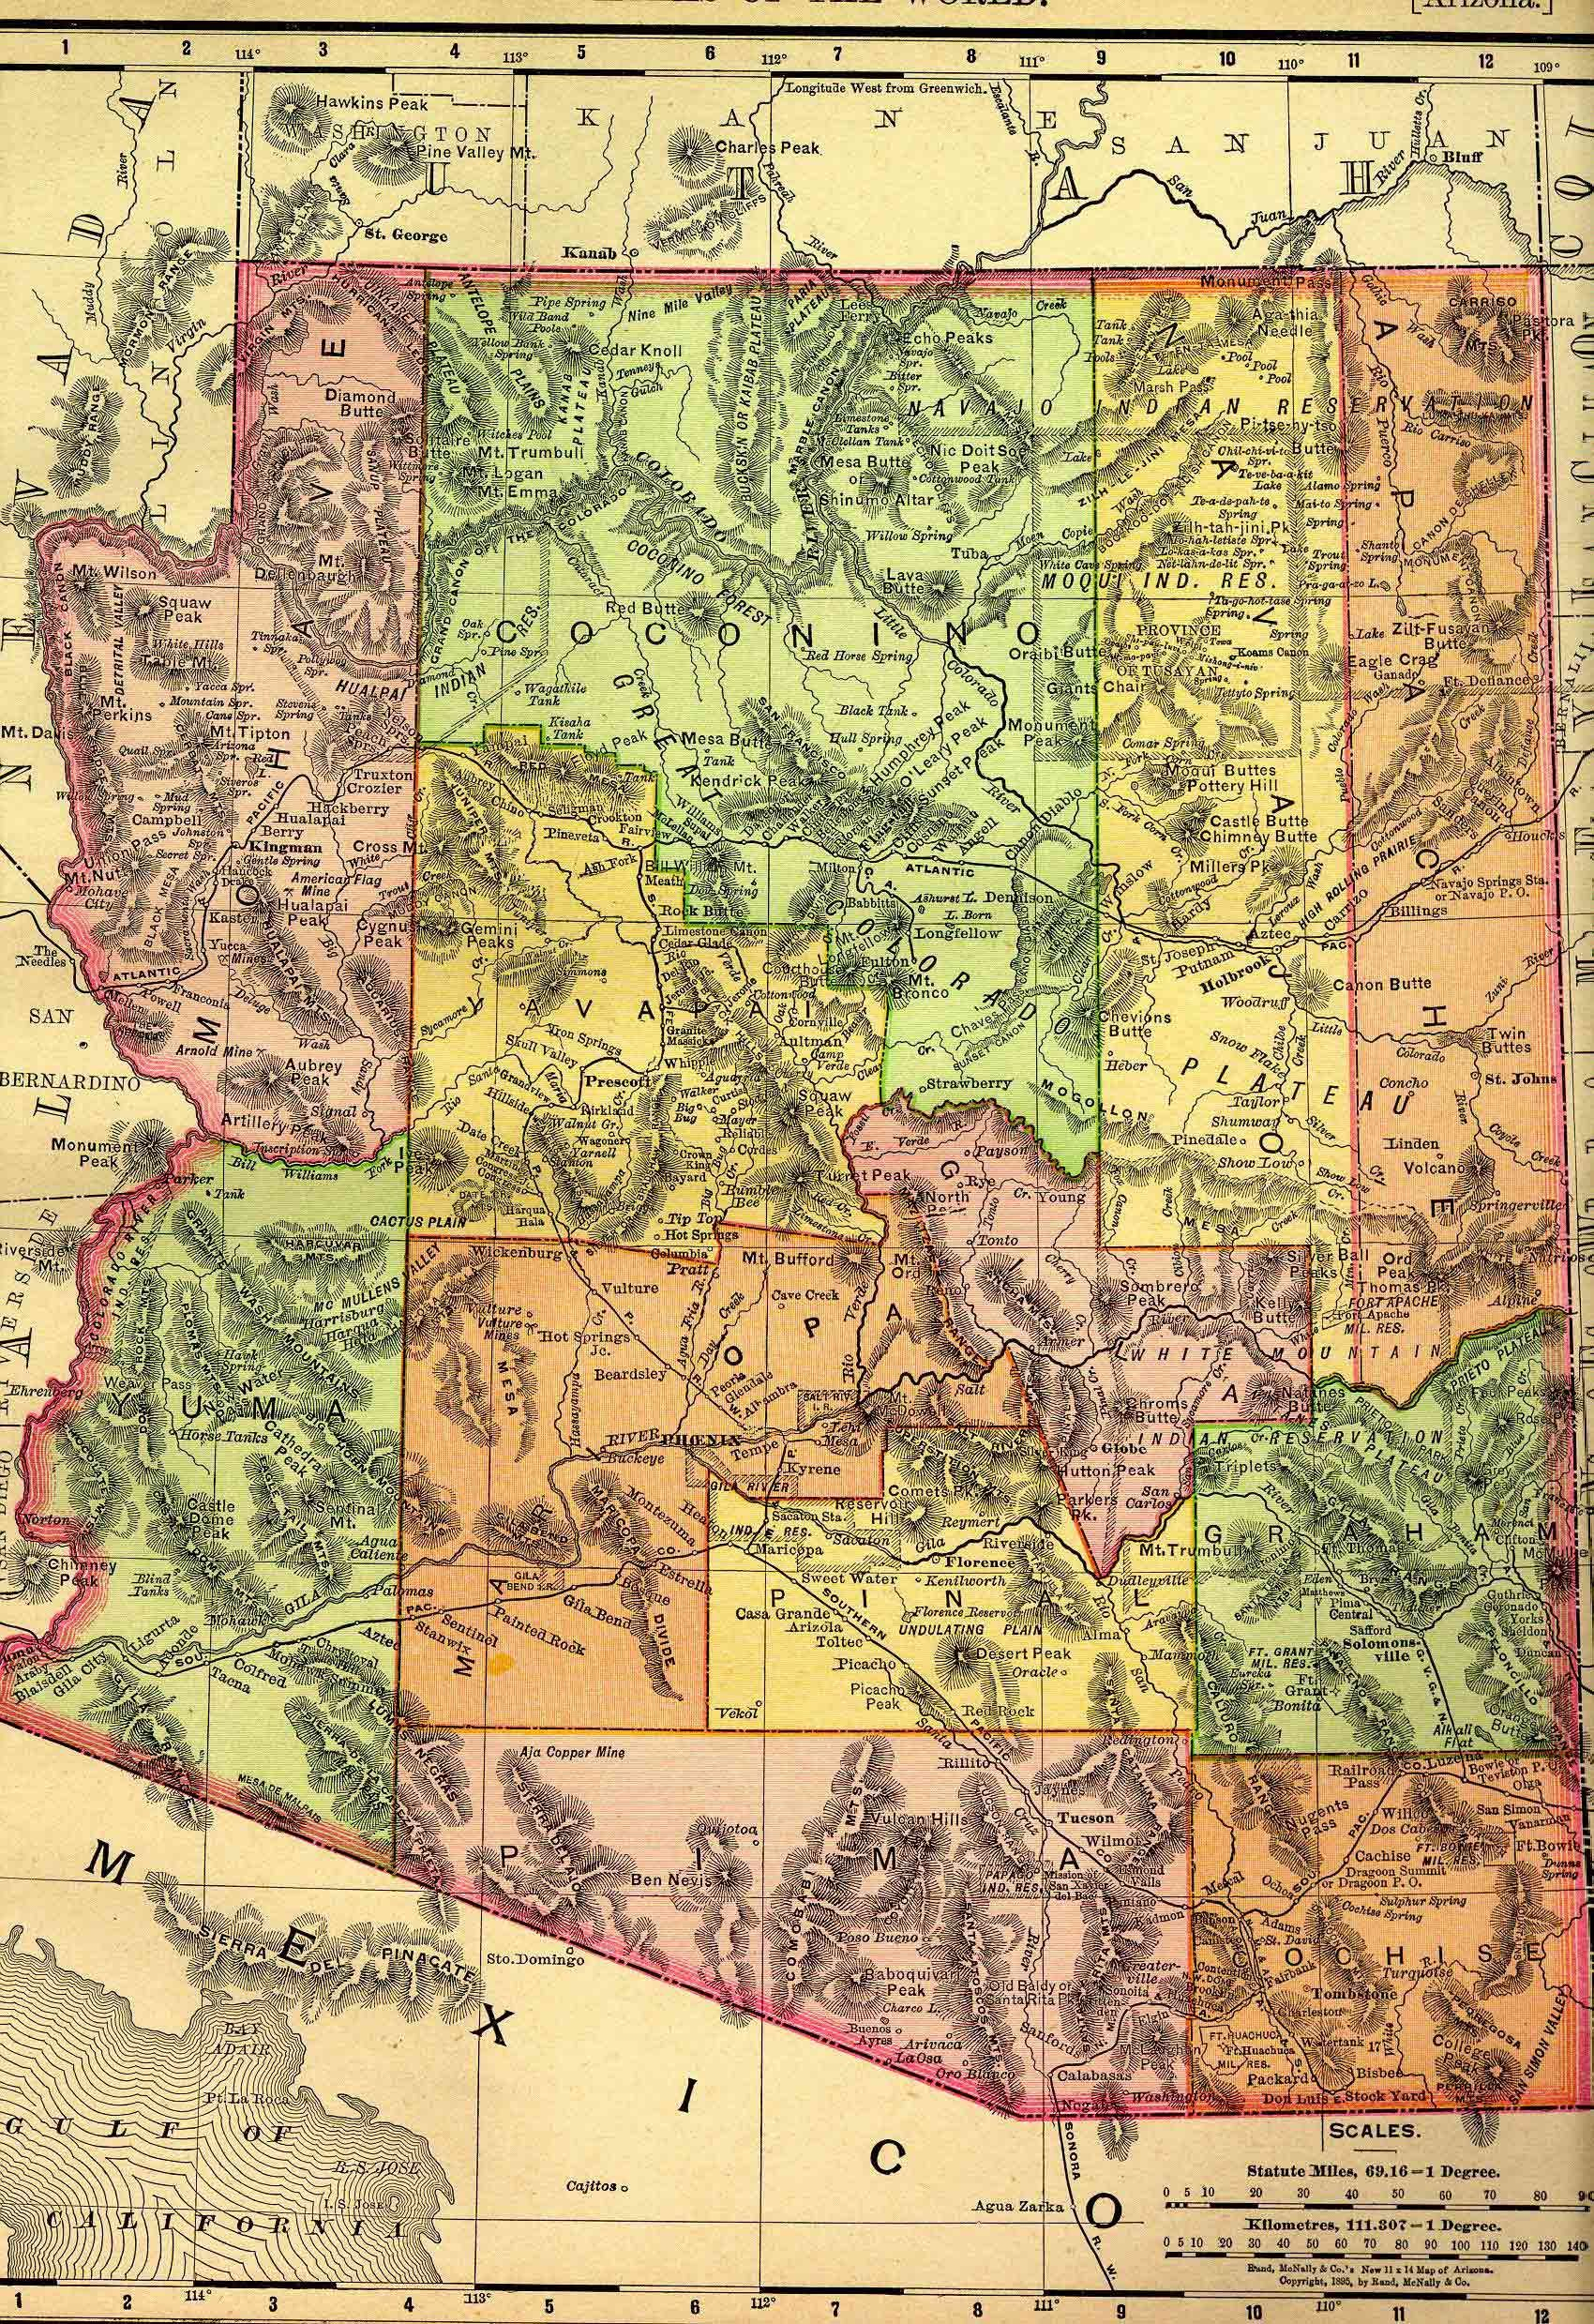 Map Of Arizona Please.Governors Of Arizona Terrtory 1880s To 1900s Google Search